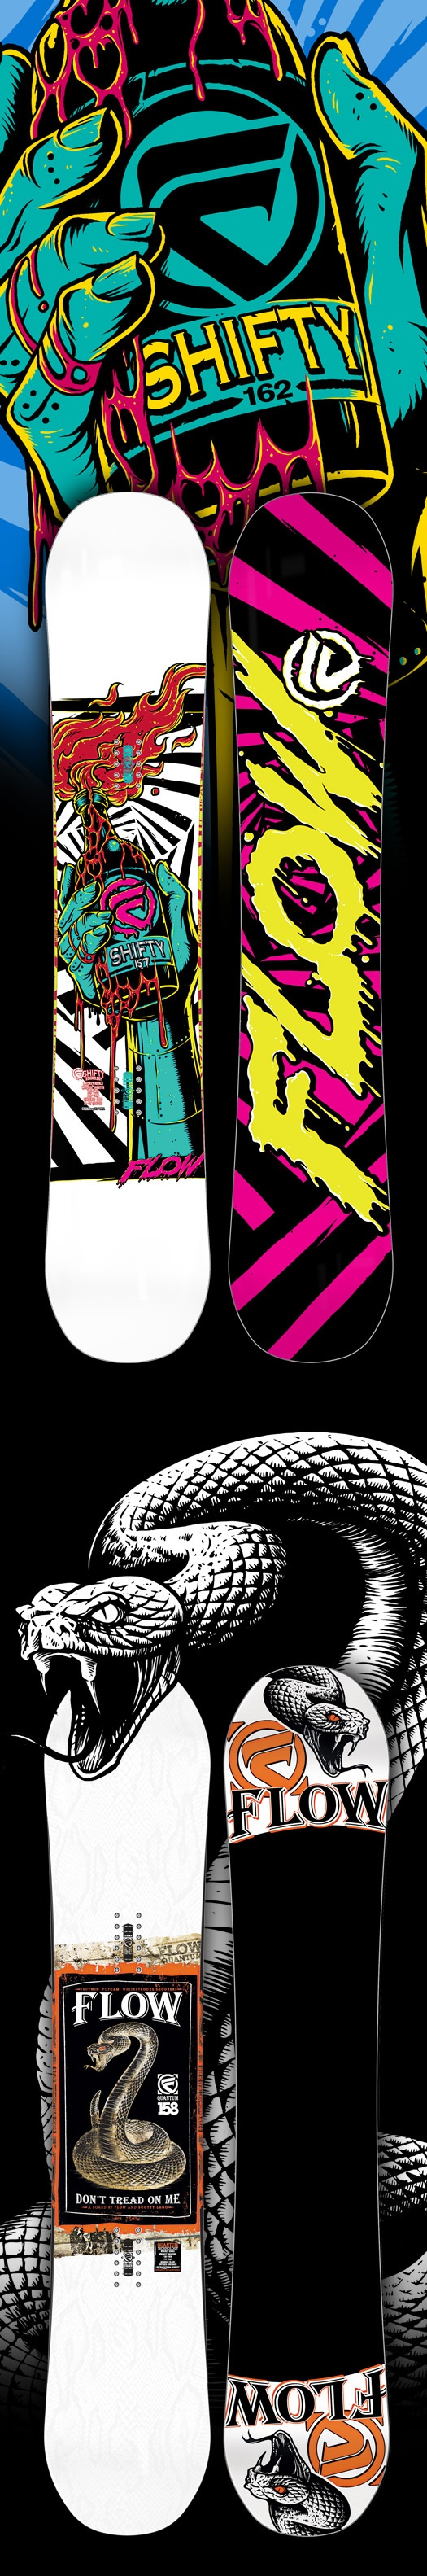 Flow Snowboards Branding & Board Graphics by SoupGraphix Inc. , via Behance